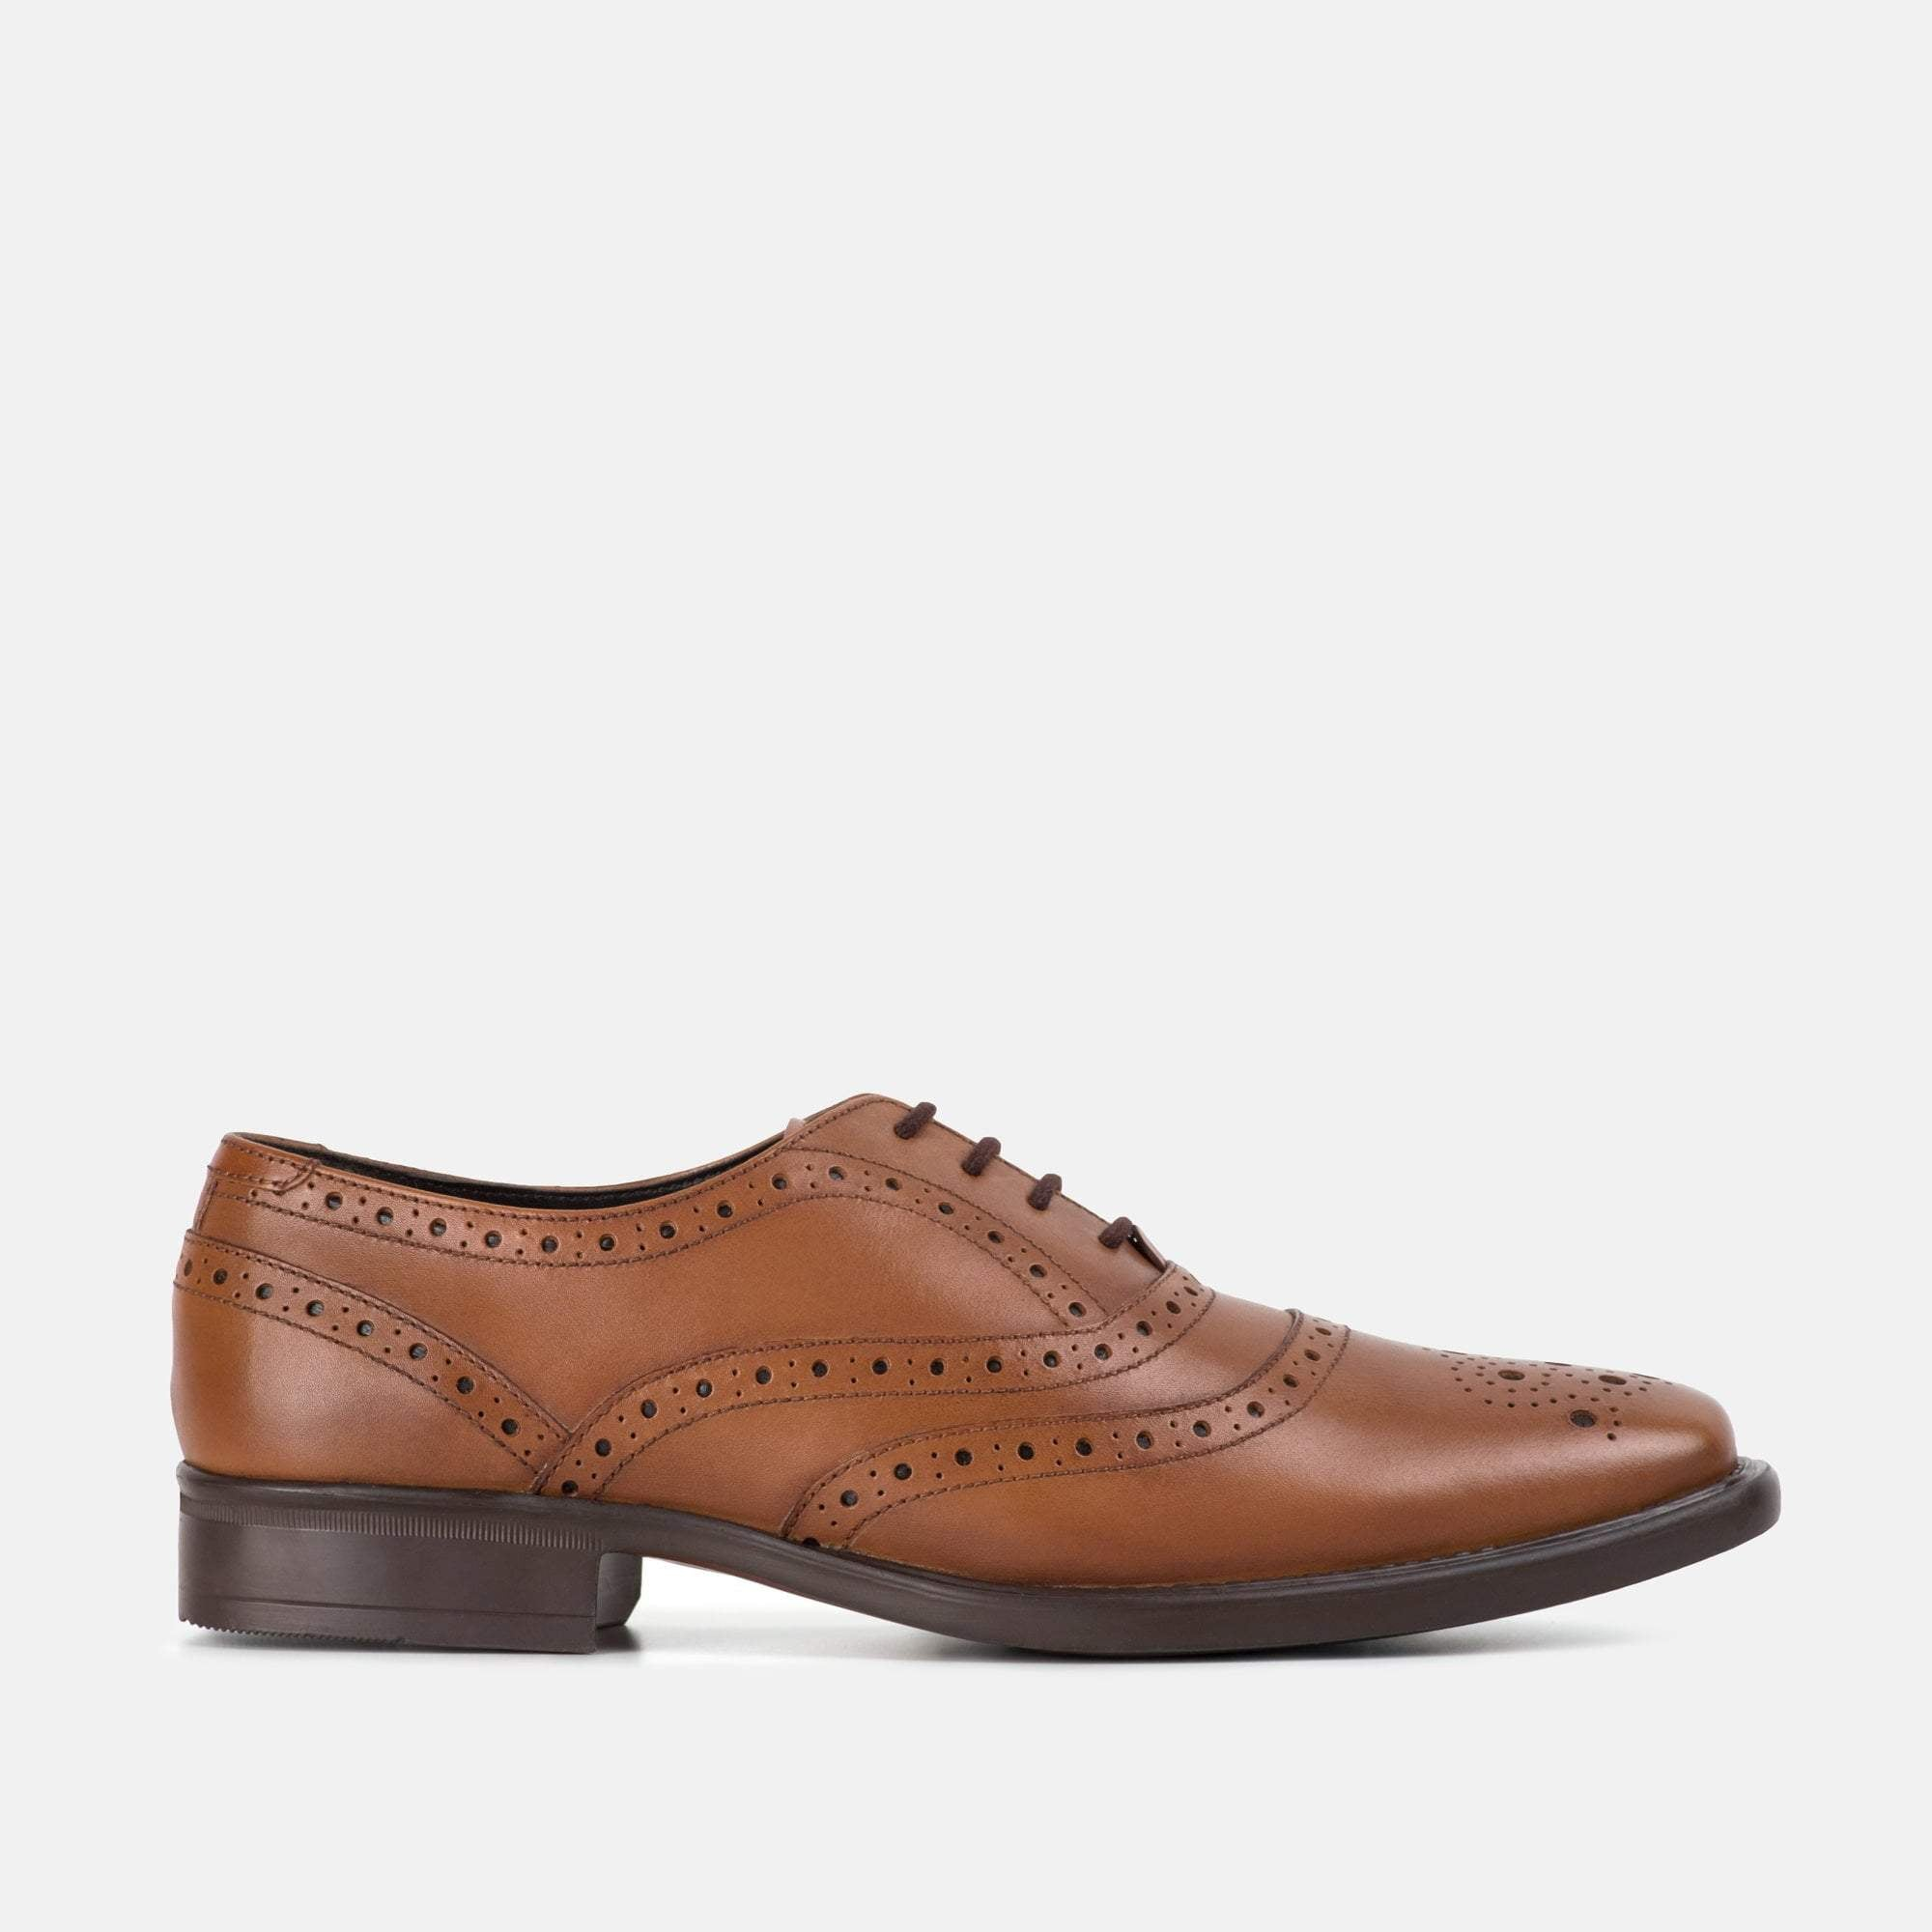 Redfoot Footwear UK 6 / EURO 39 / US 7 / Tan / Leather WILLIAM TAN